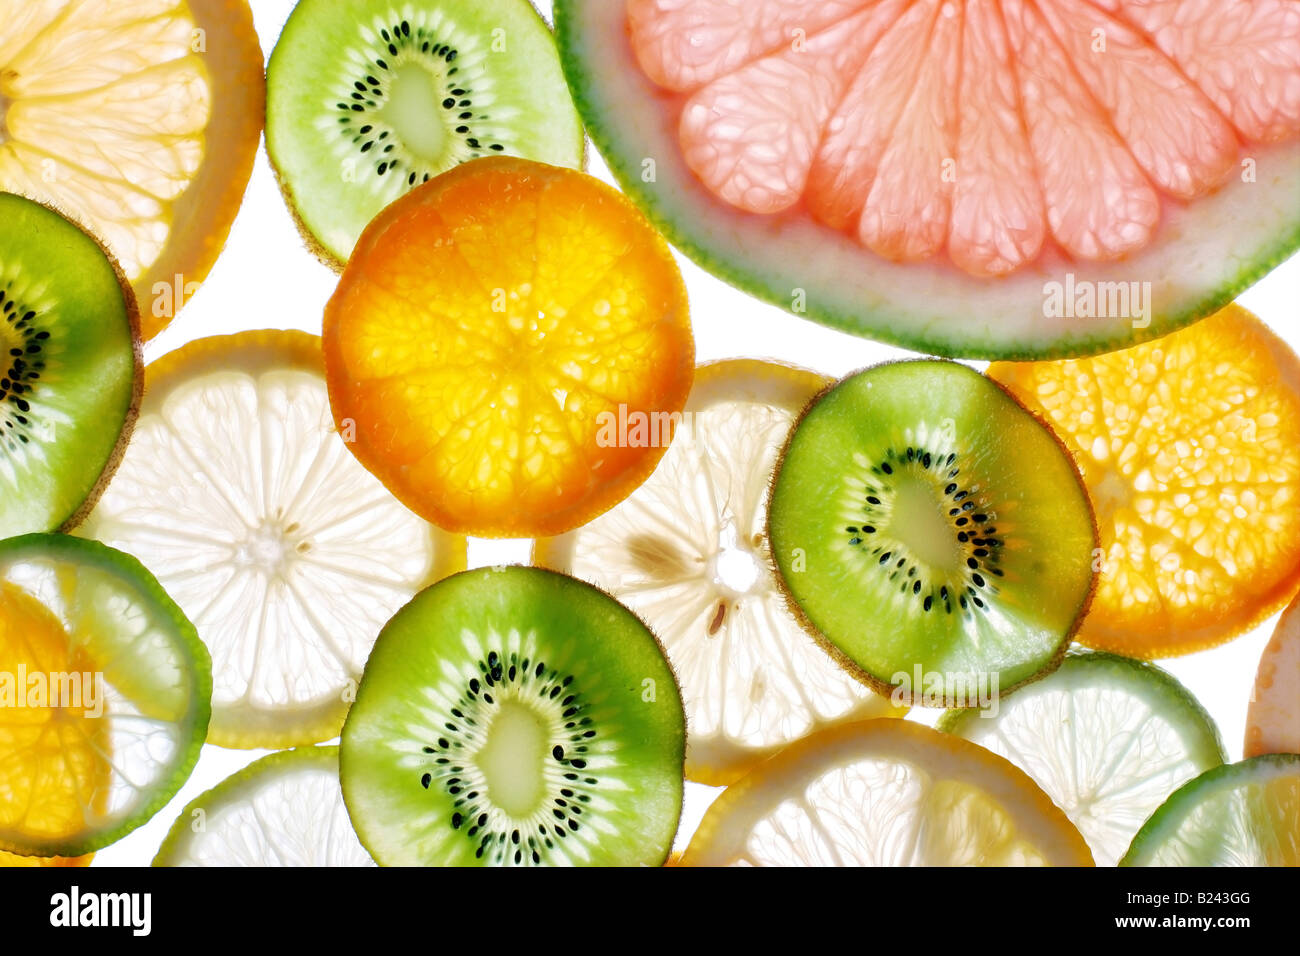 citrus - Stock Image